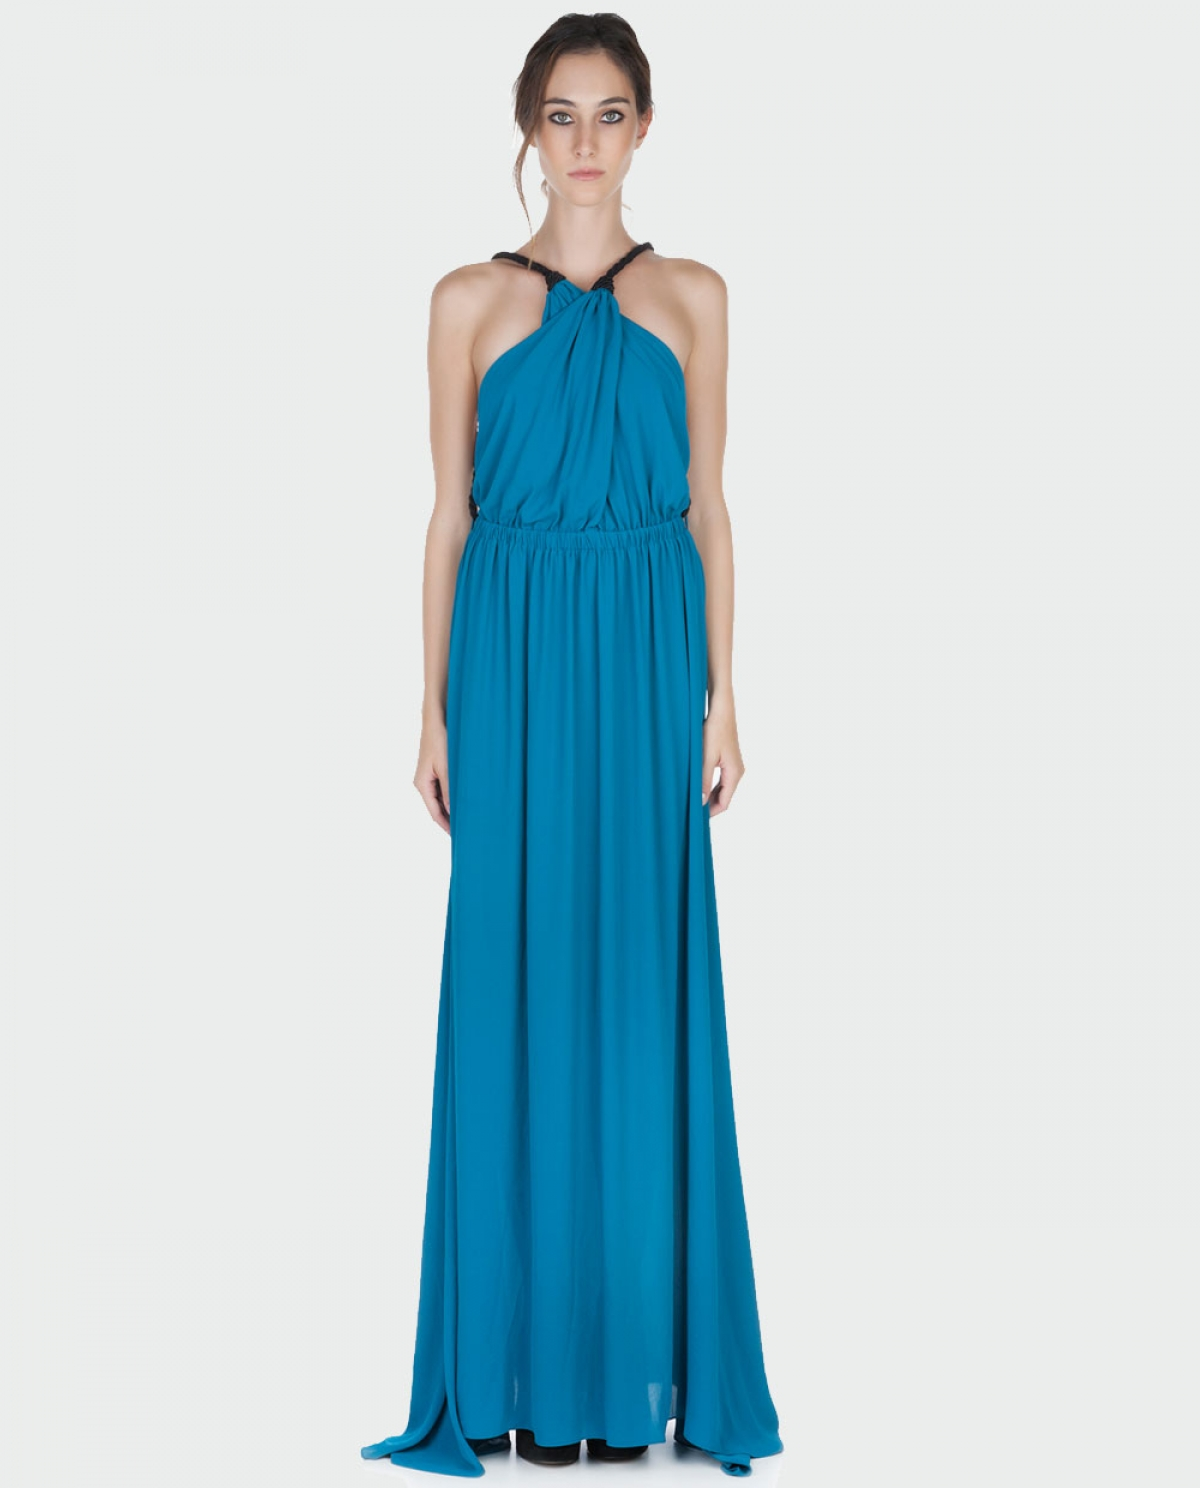 Bridesmaid Dresses At Jcpenney Image collections - Braidsmaid Dress ...